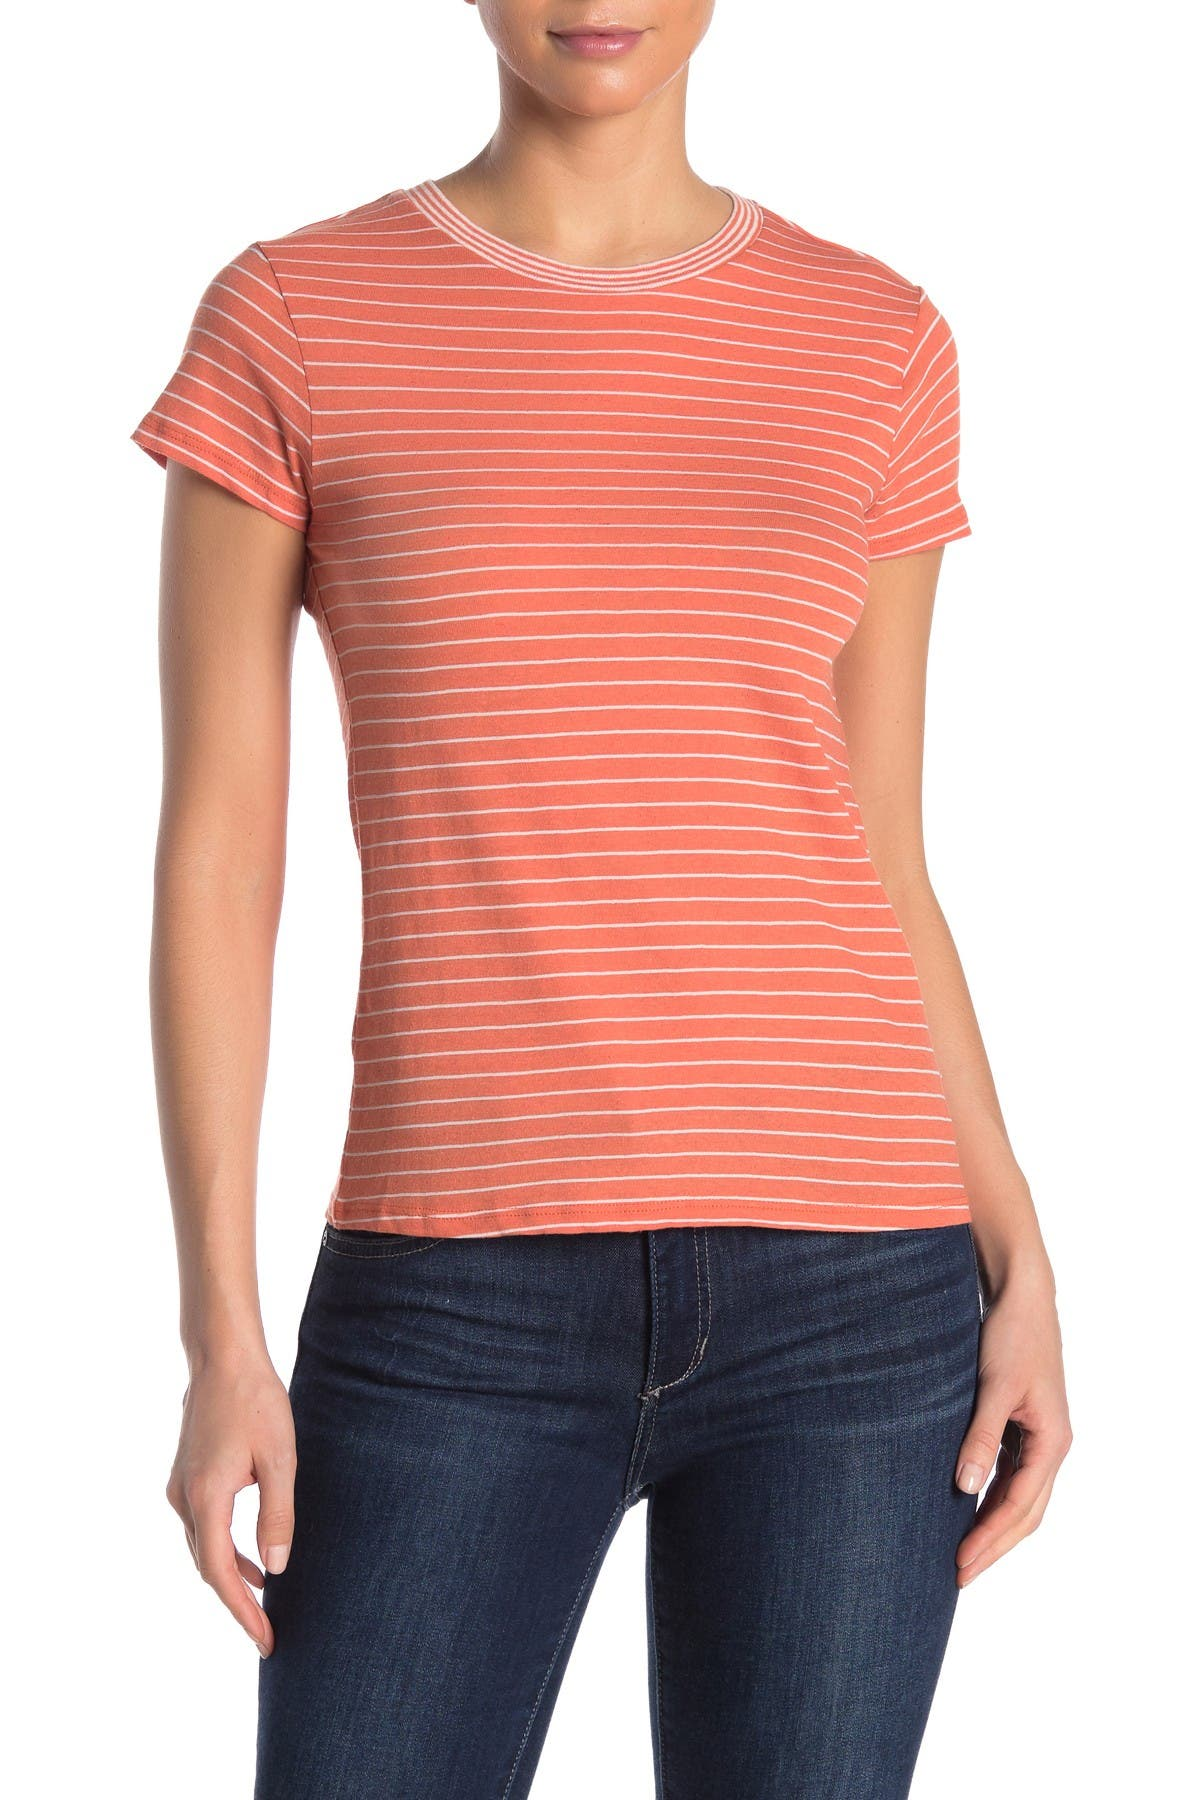 Image of FAHERTY BRAND Didion Striped T-Shirt